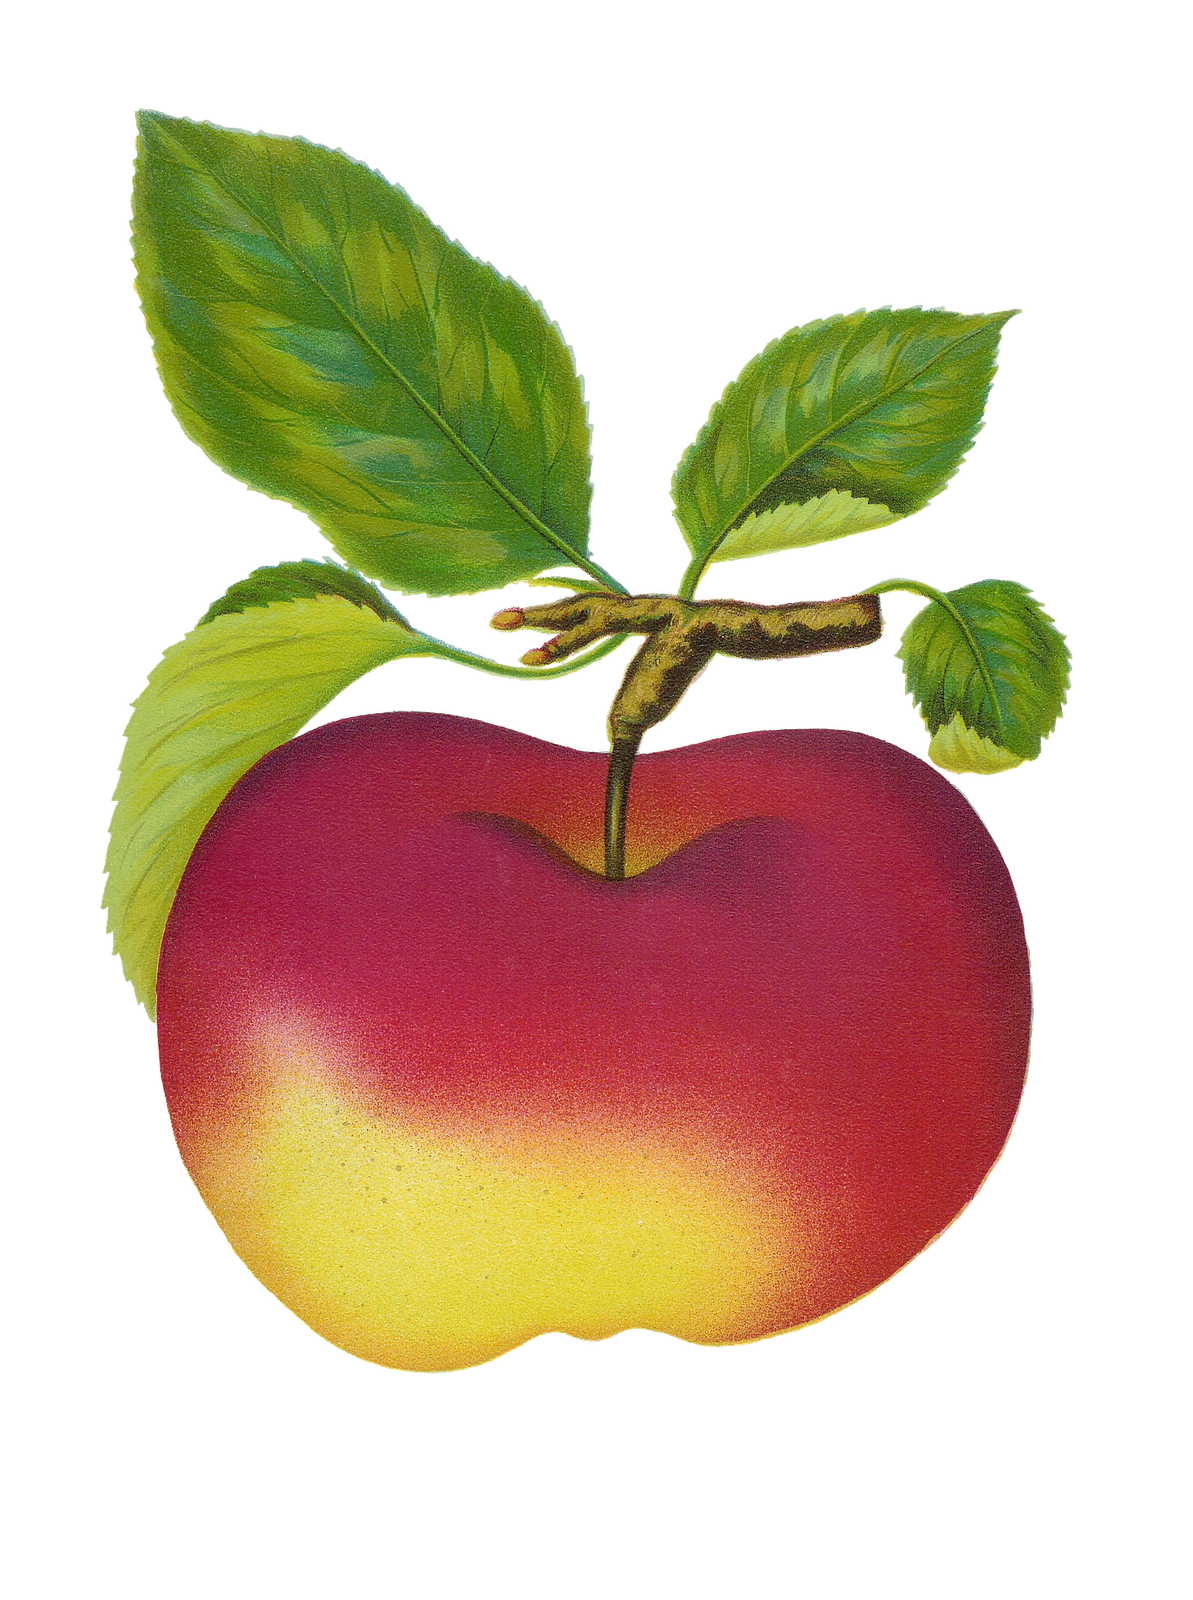 Apple clipart vintage